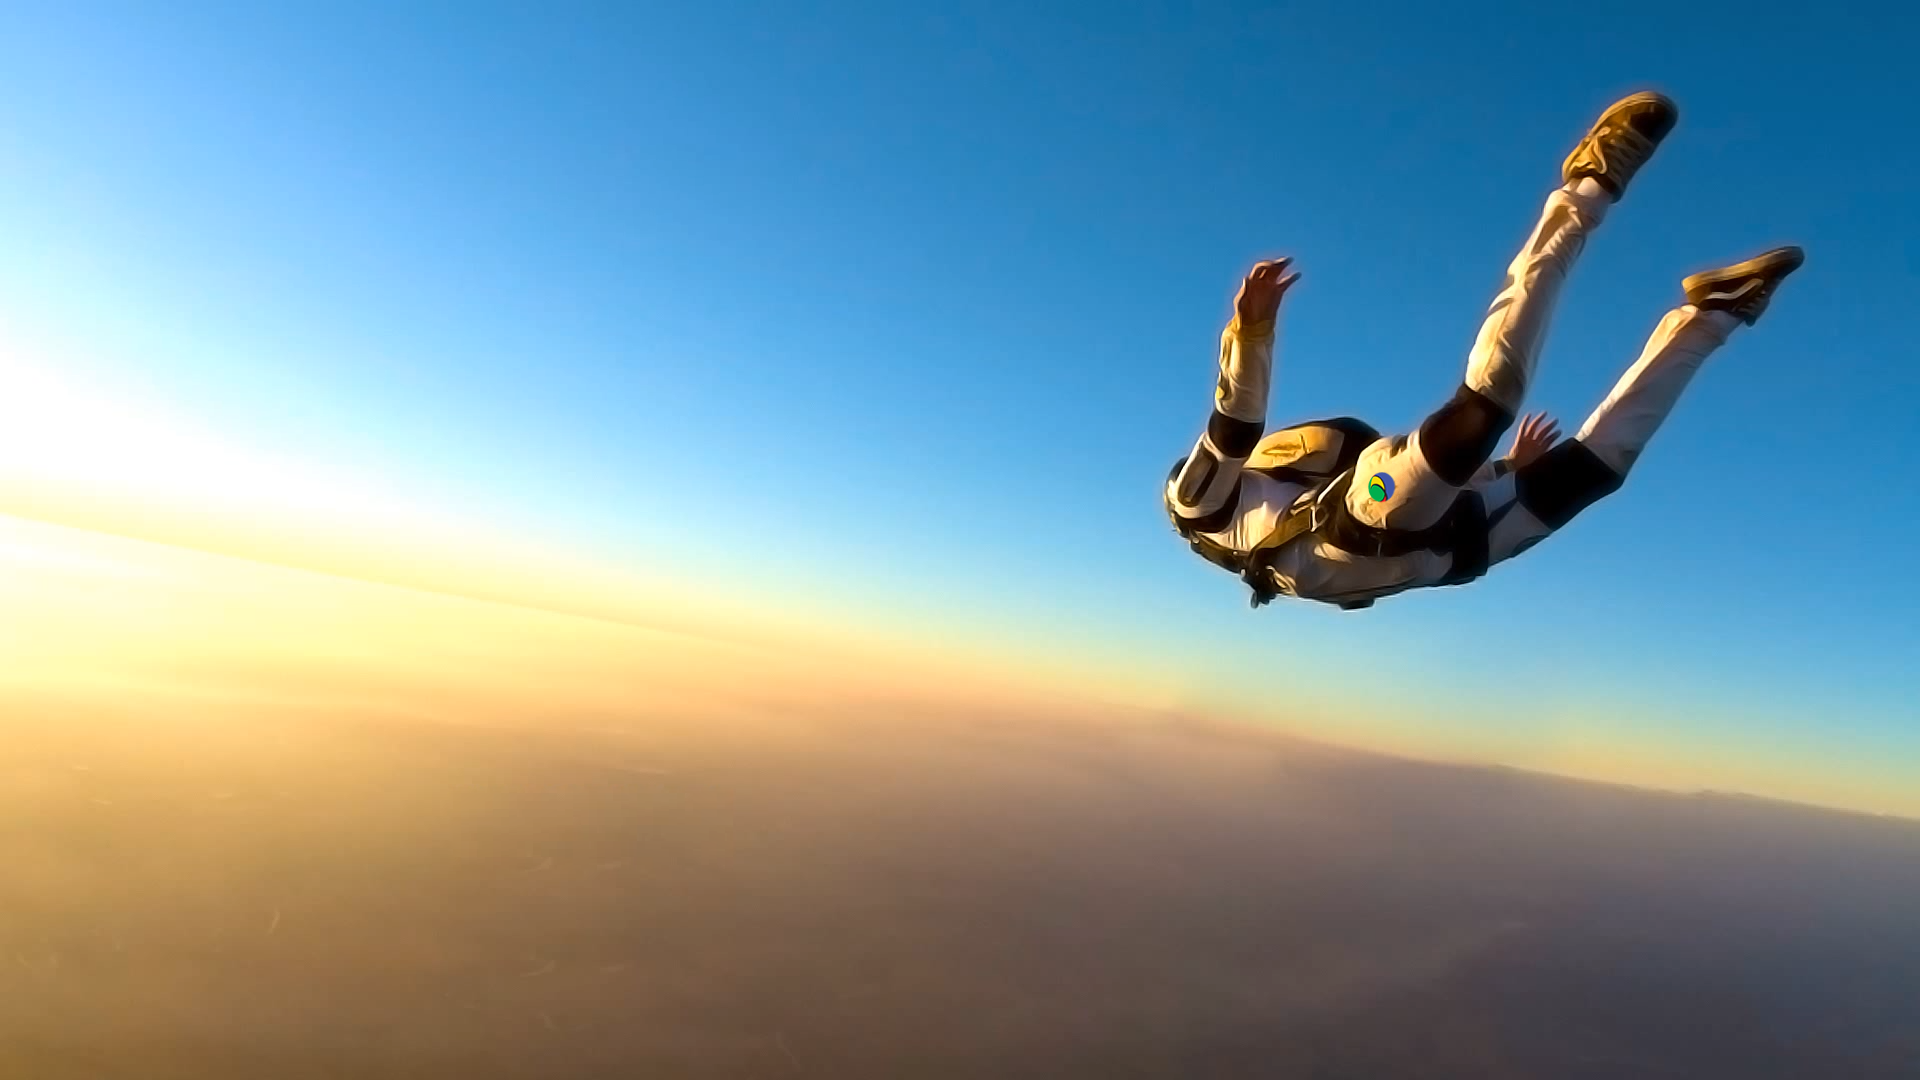 2013_12_Cool-Skydiver-Wallpaper